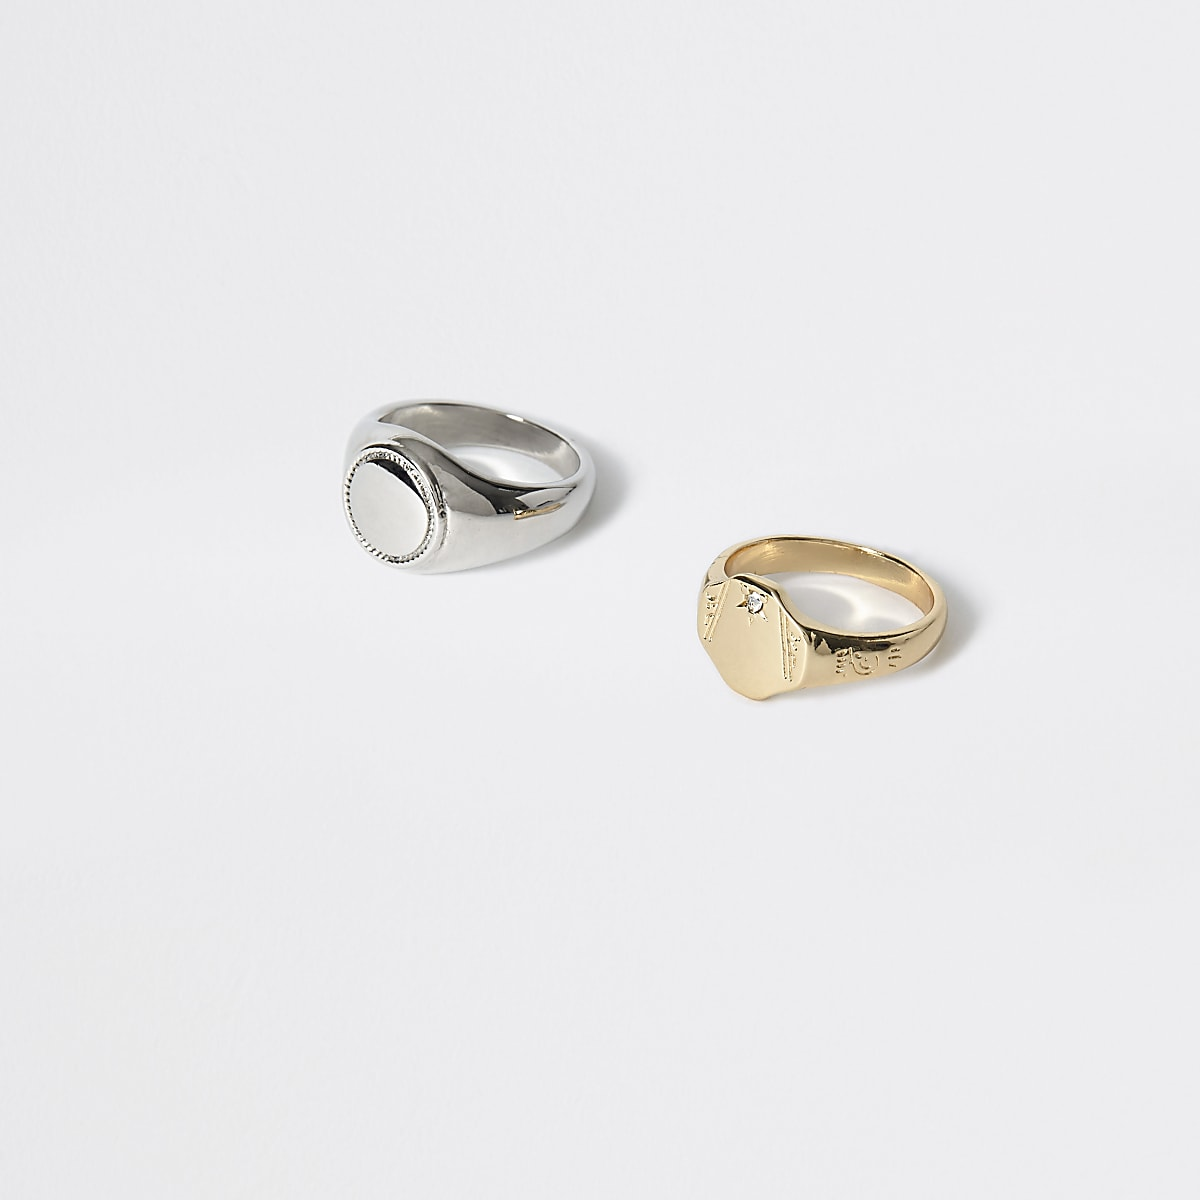 Silver and gold signet ring 2 pack